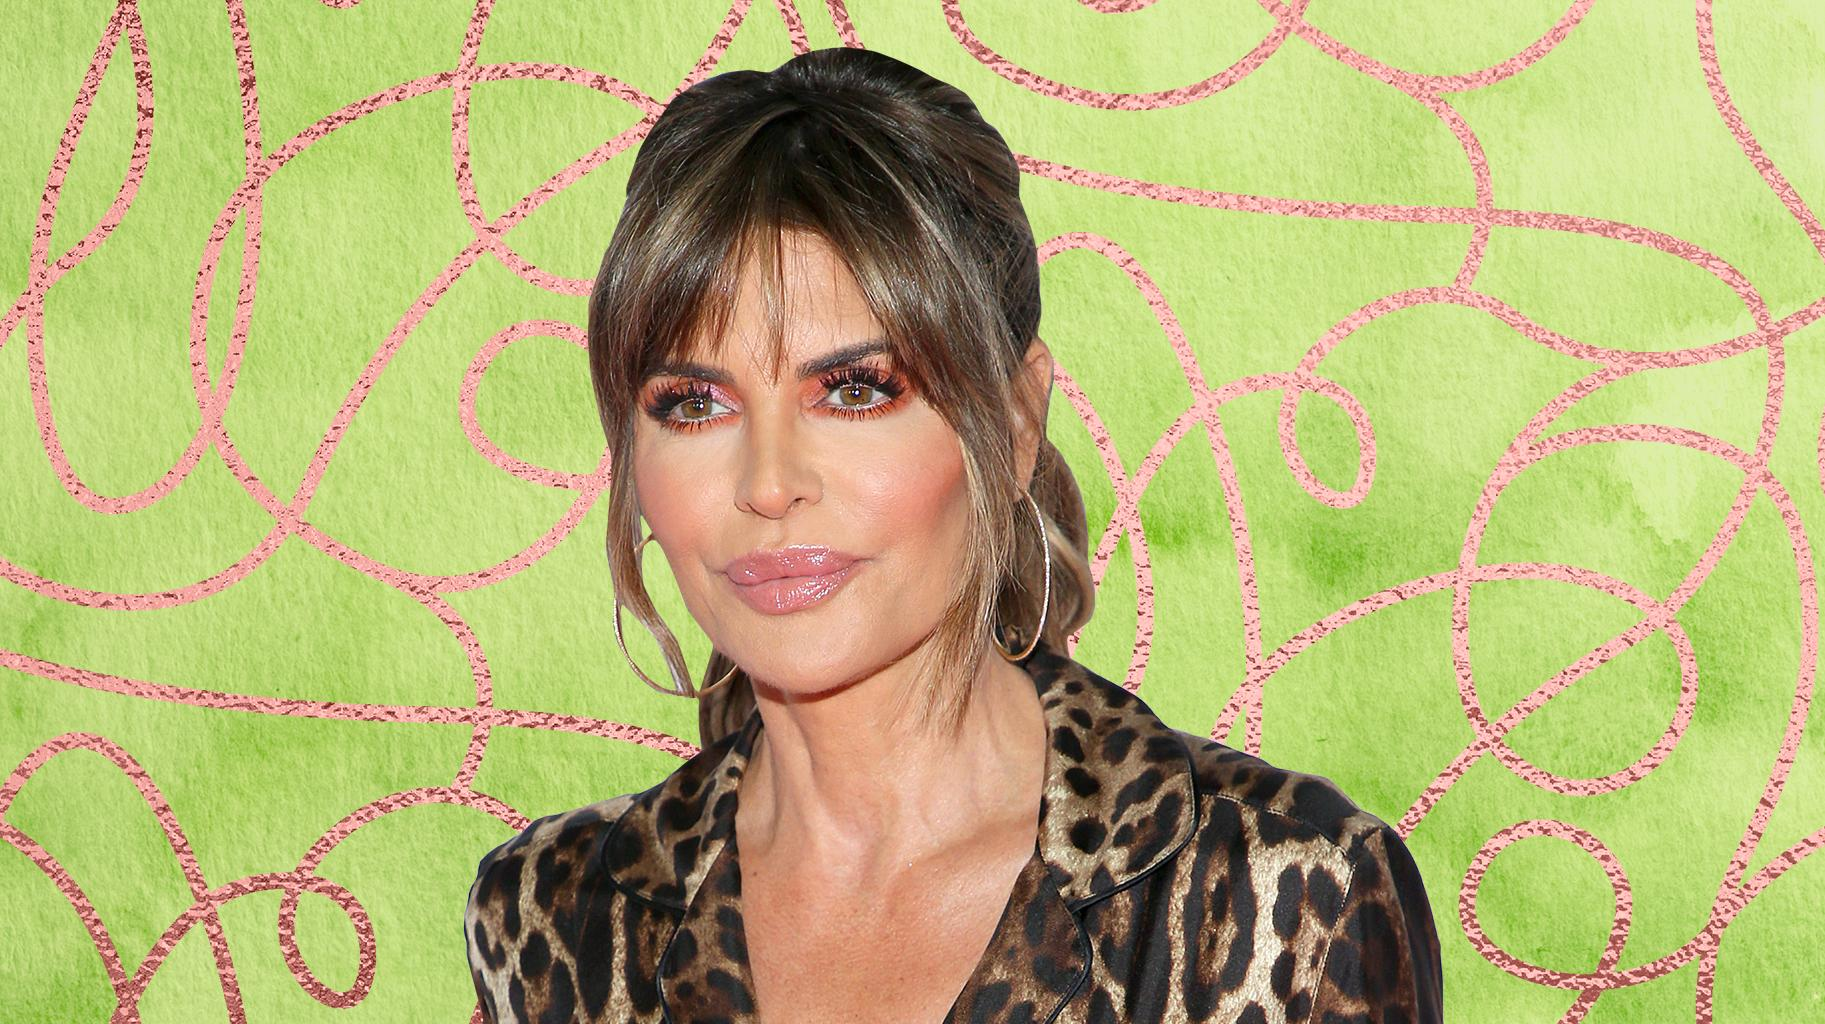 Lisa Rinna Reveals Why She Was Upset About The RHOBH Reunion